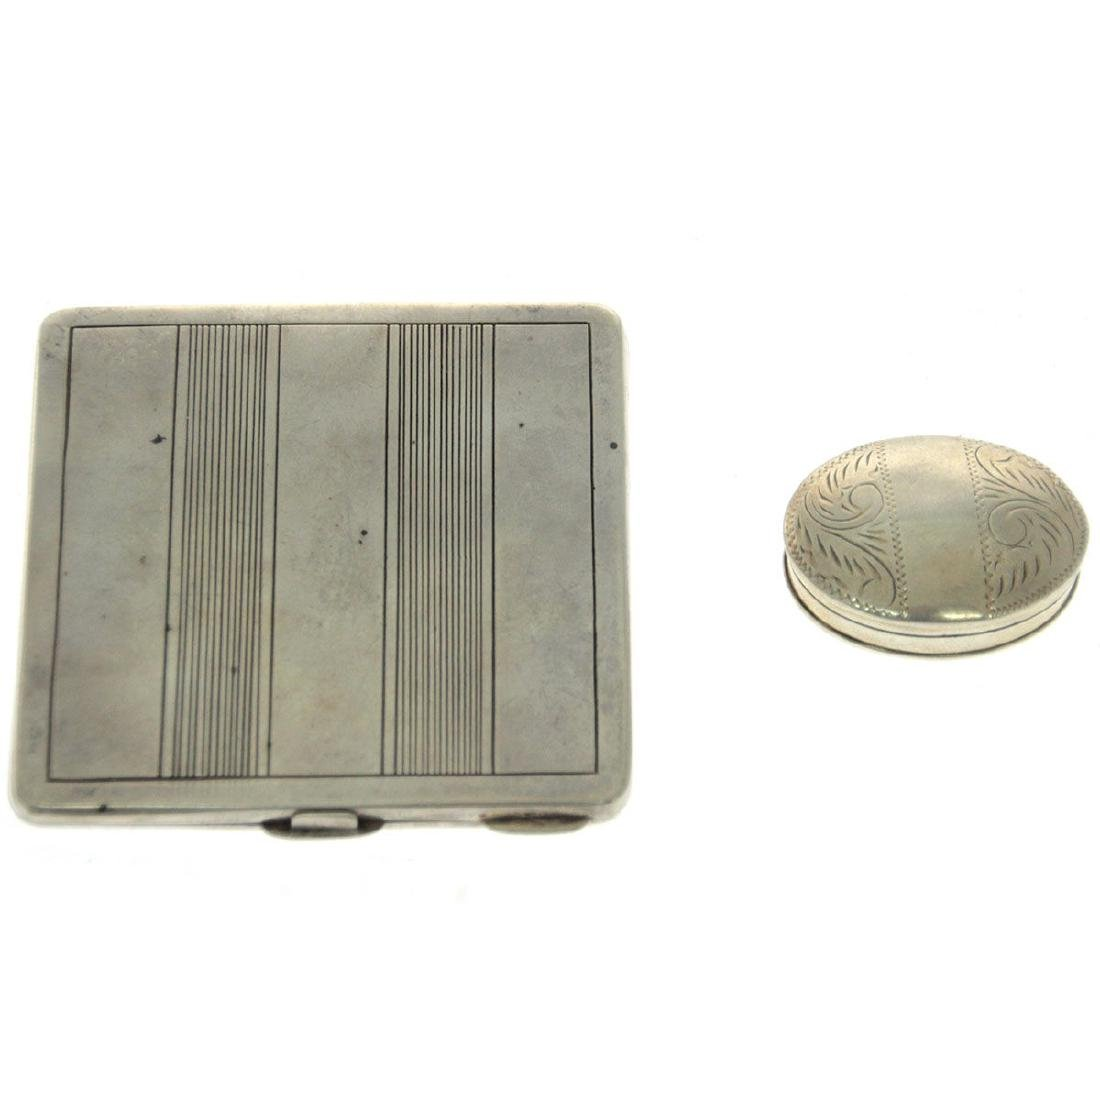 Silver Powder Case and Snuff Box.